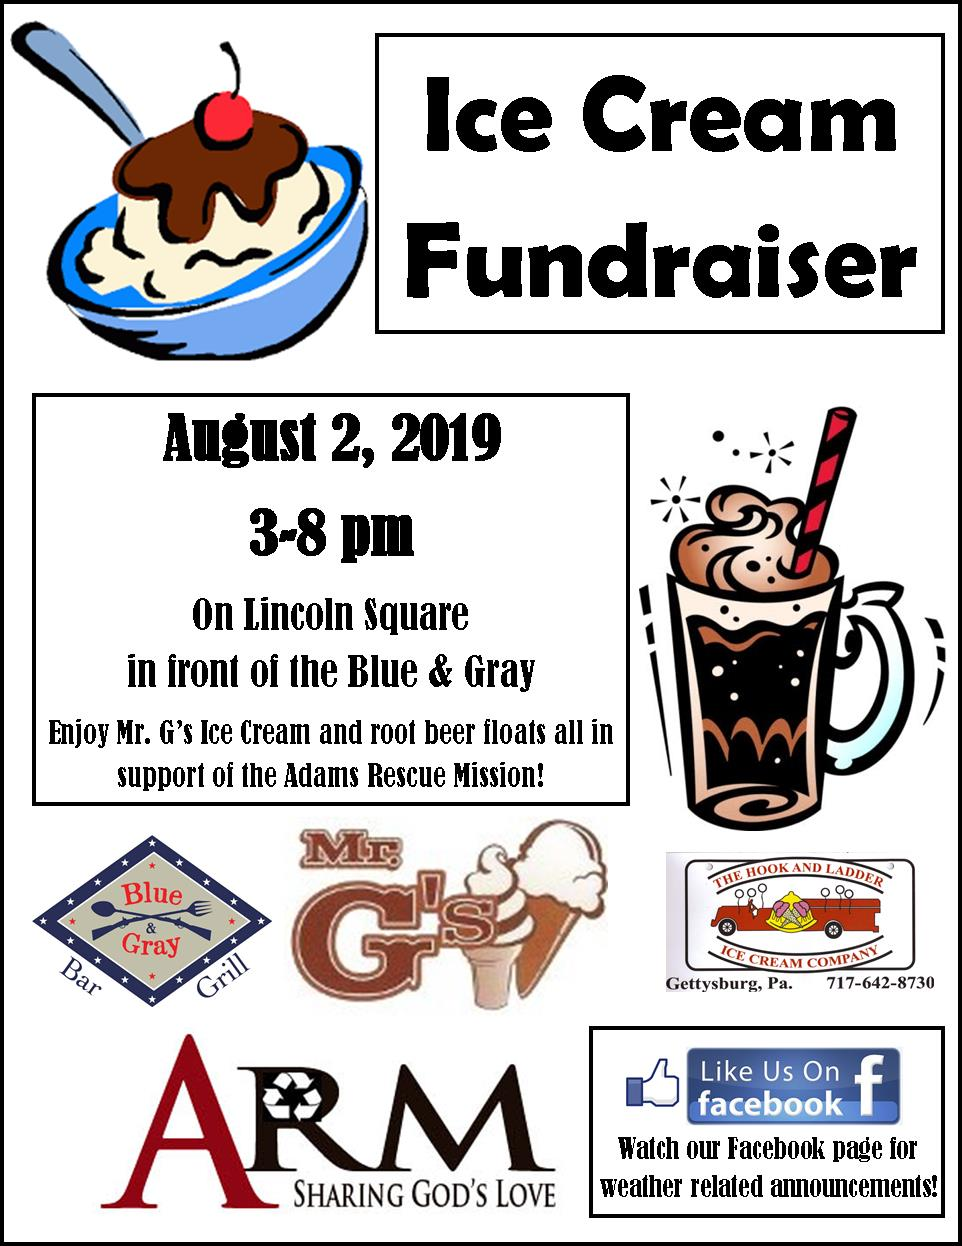 Ice Cream Fundraiser August 2 2019.jpg